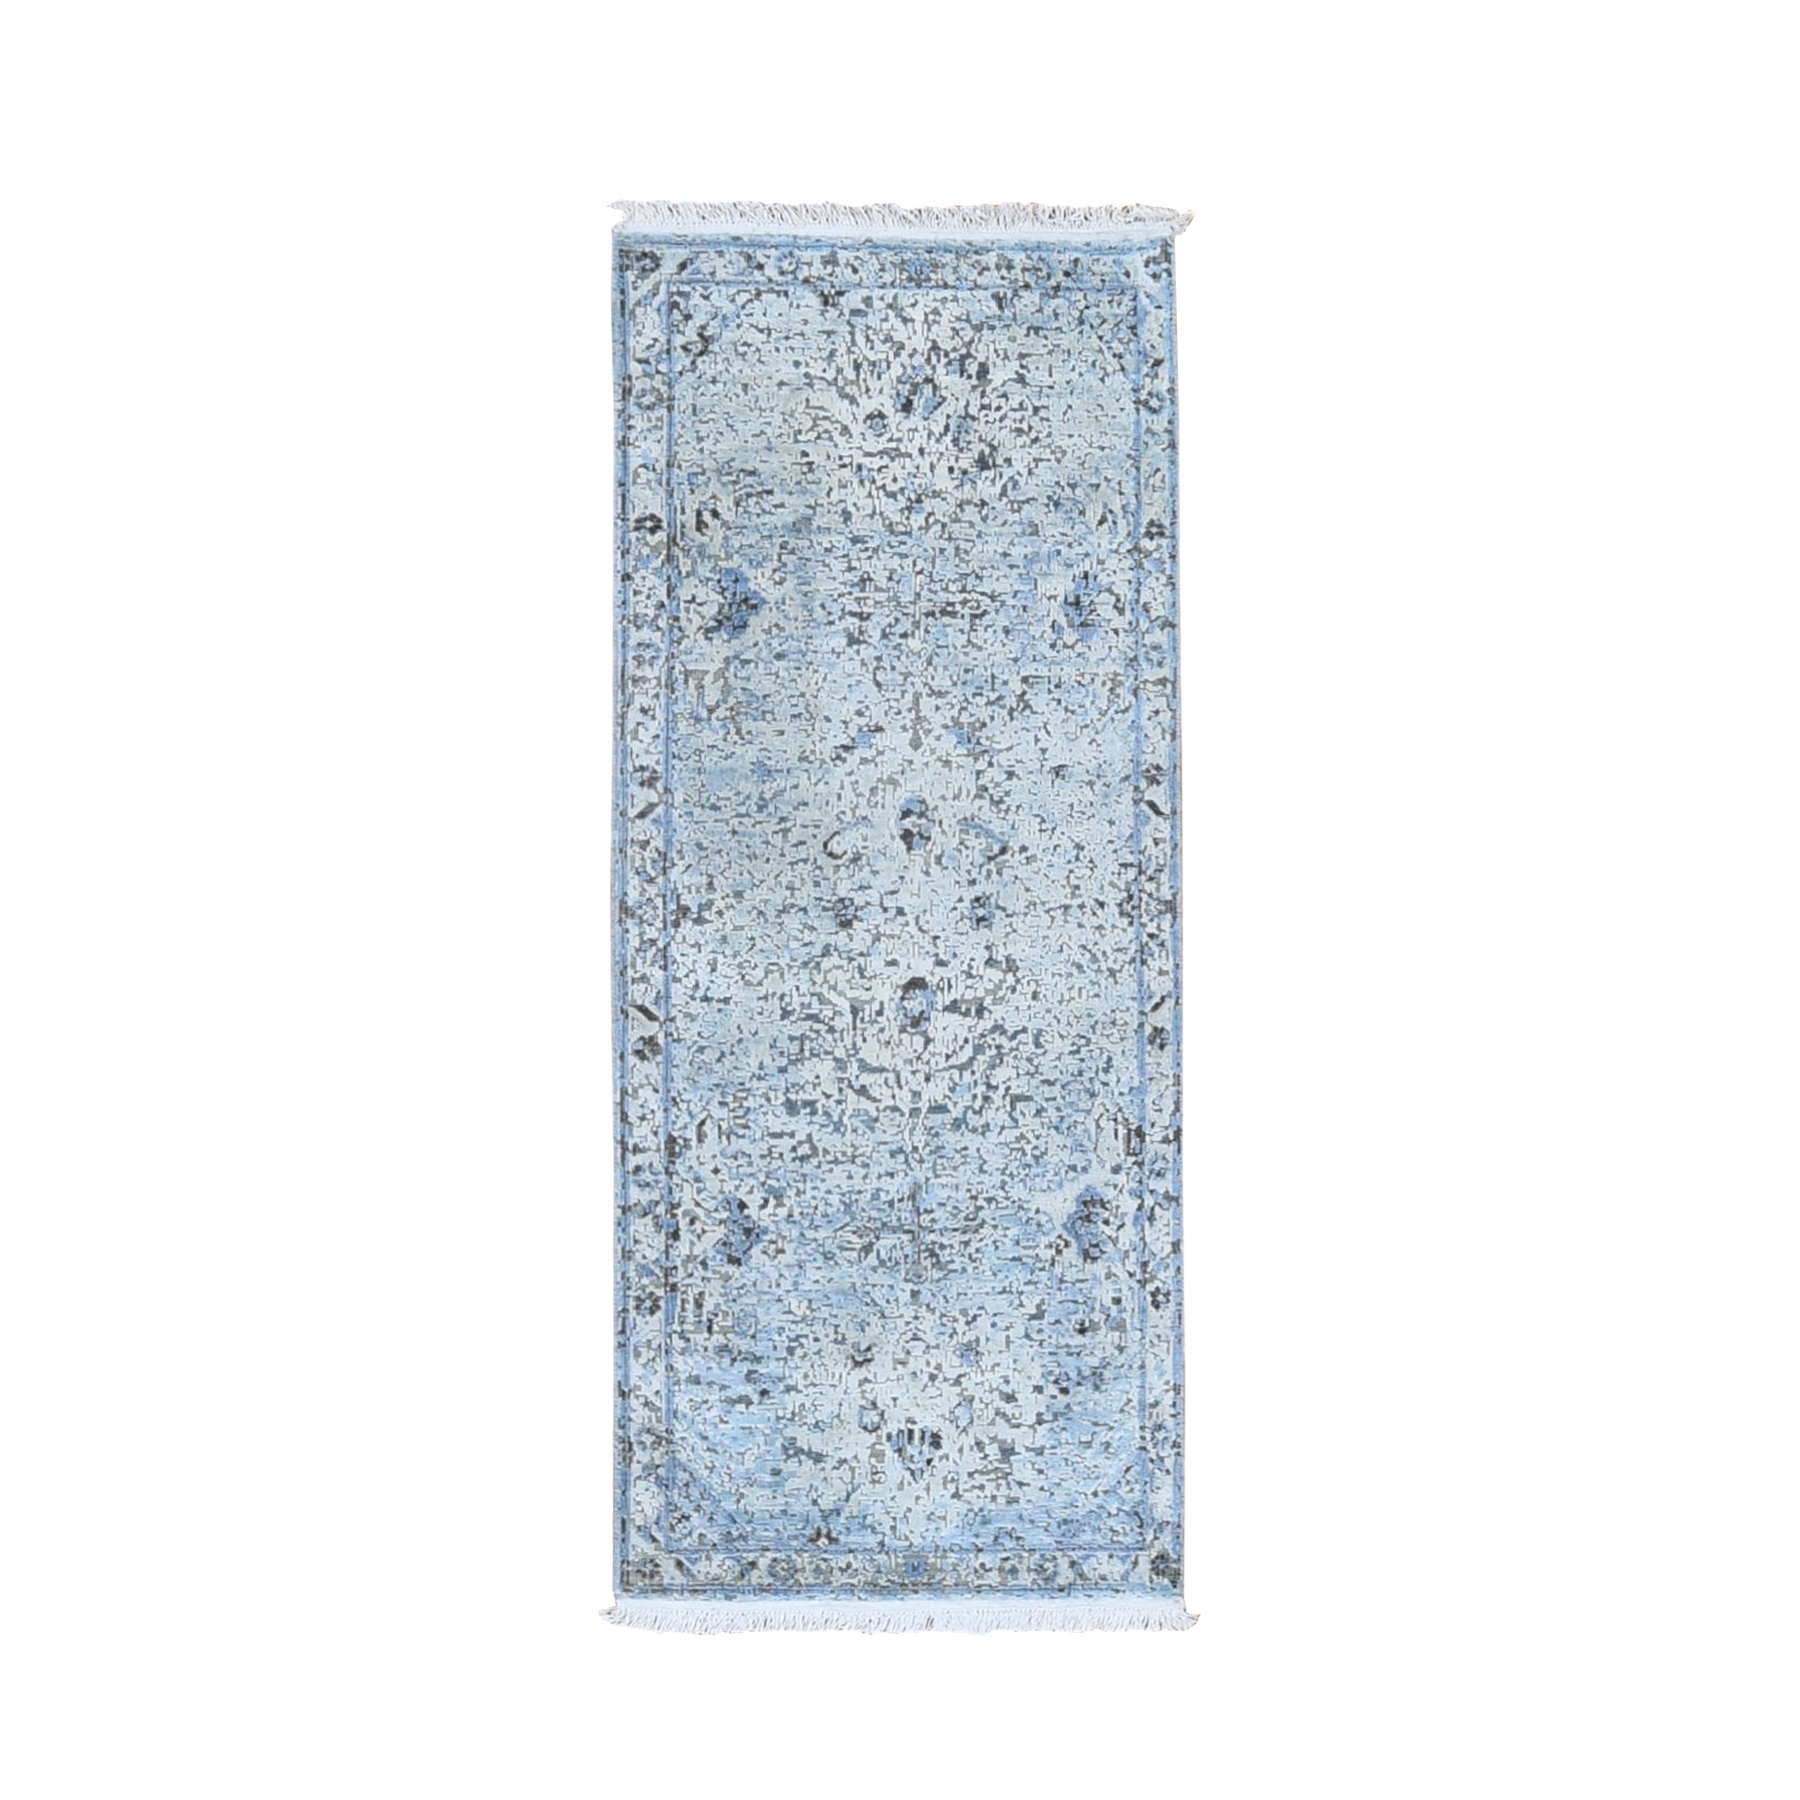 "2'5""x5'10"" Ivory Distressed Oushak Pure Silk with Textured Wool Hand Woven Runner Oriental Rug"